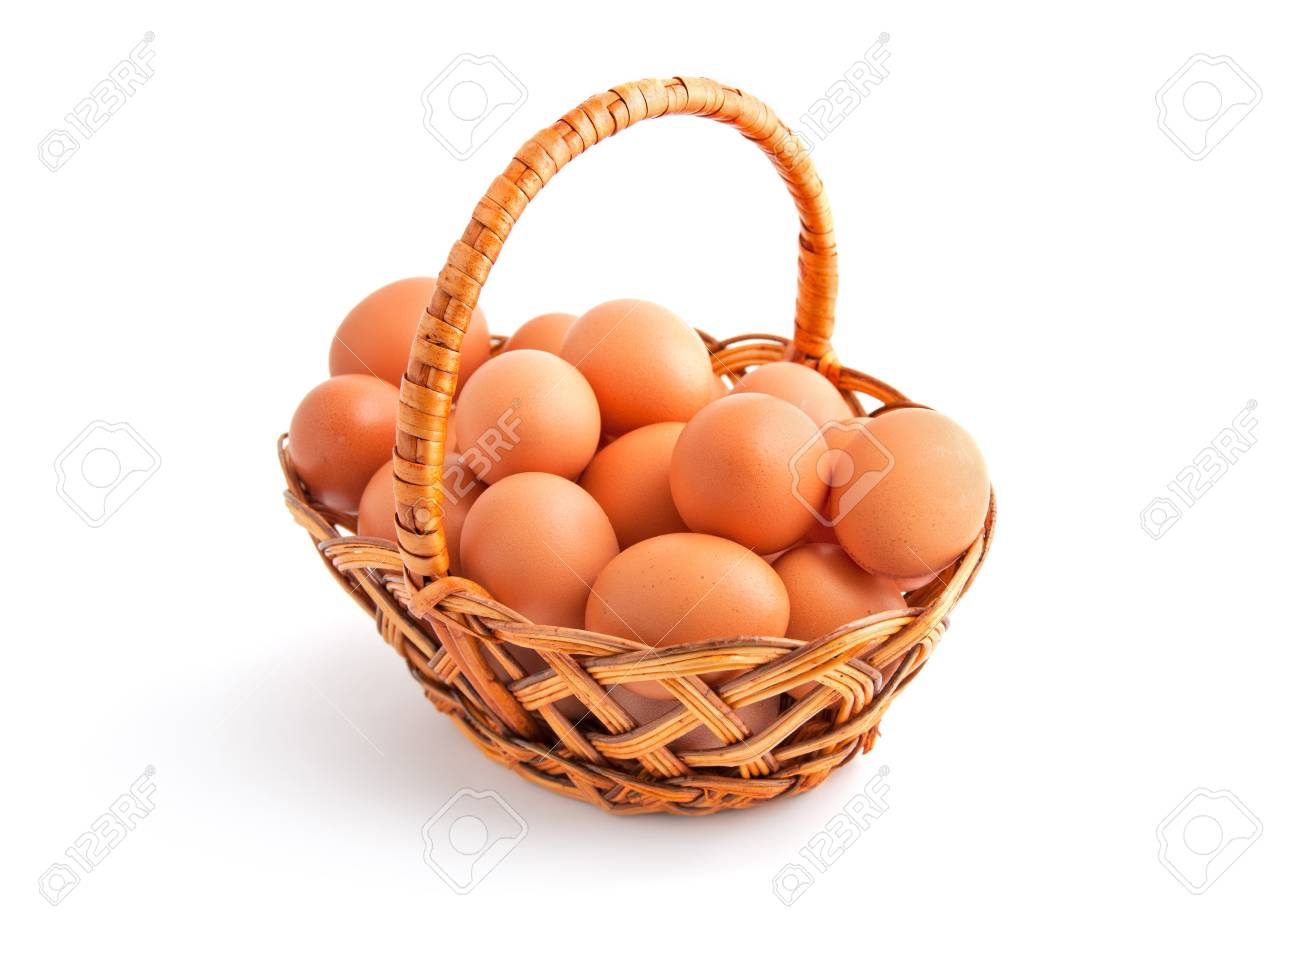 Chicken eggs in a basket isolated on white with shadow Stock Photo - 17114188